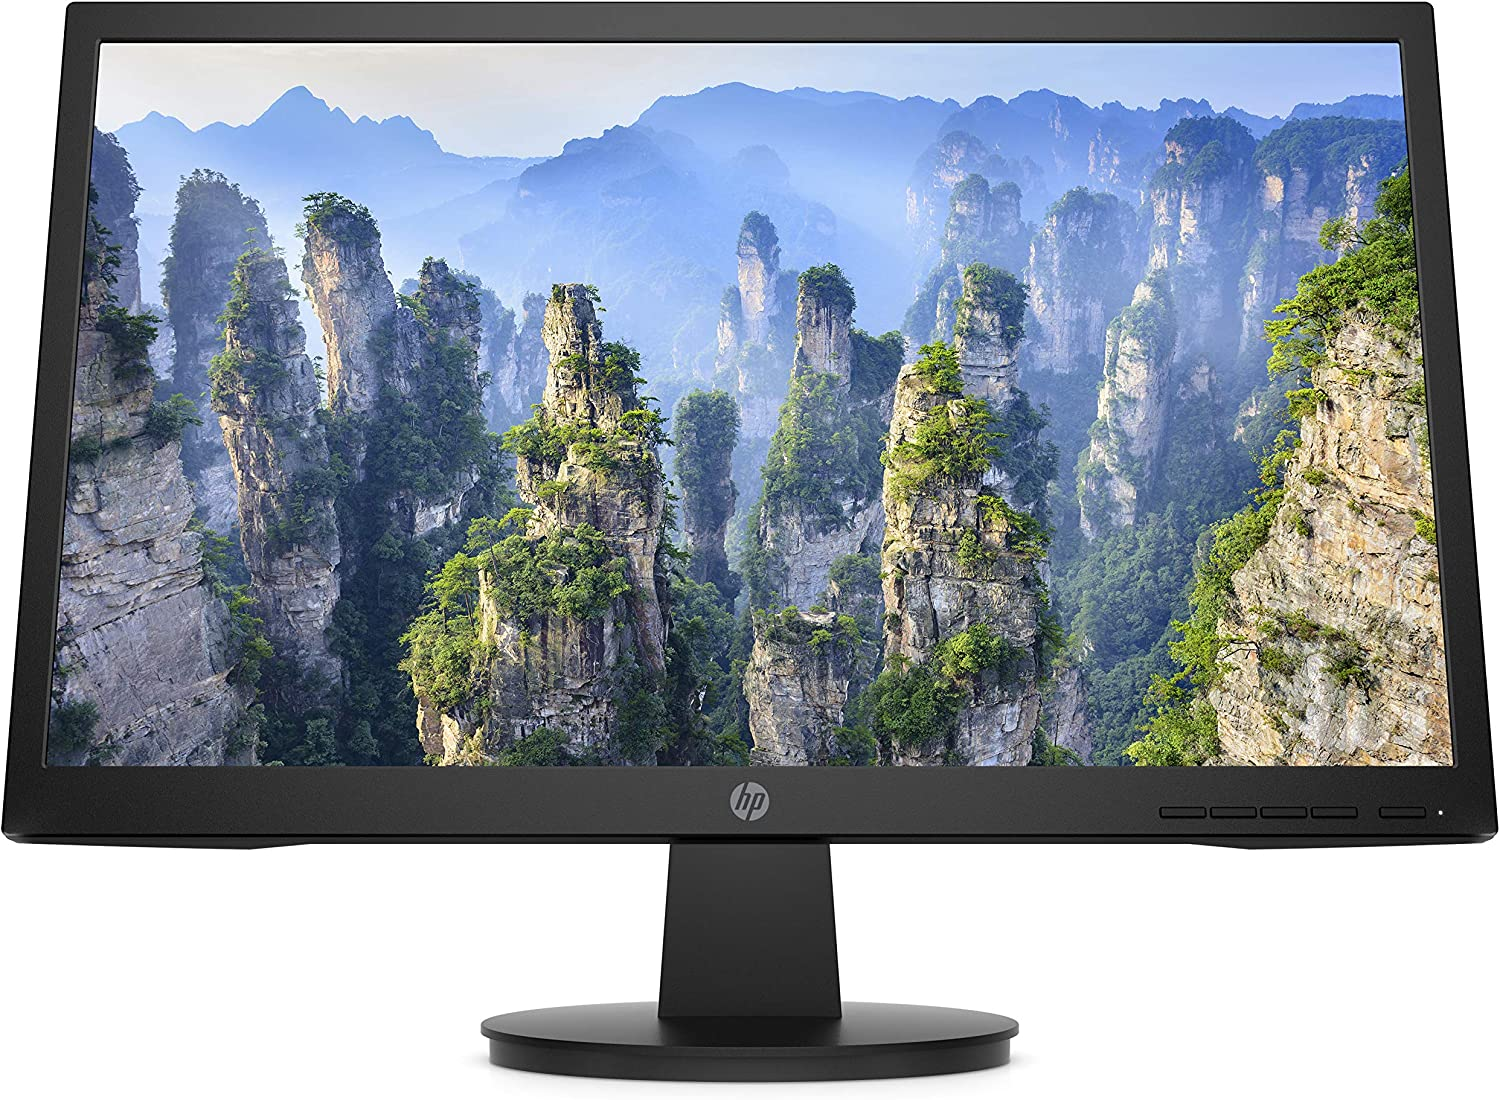 HP V22 FHD Monitor | 21.5-inch Diagonal FHD Computer Monitor with TN Panel and Blue Light Settings | HP Monitor with Tiltable Screen HDMI and VGA Port | (9SV78AA#ABA)